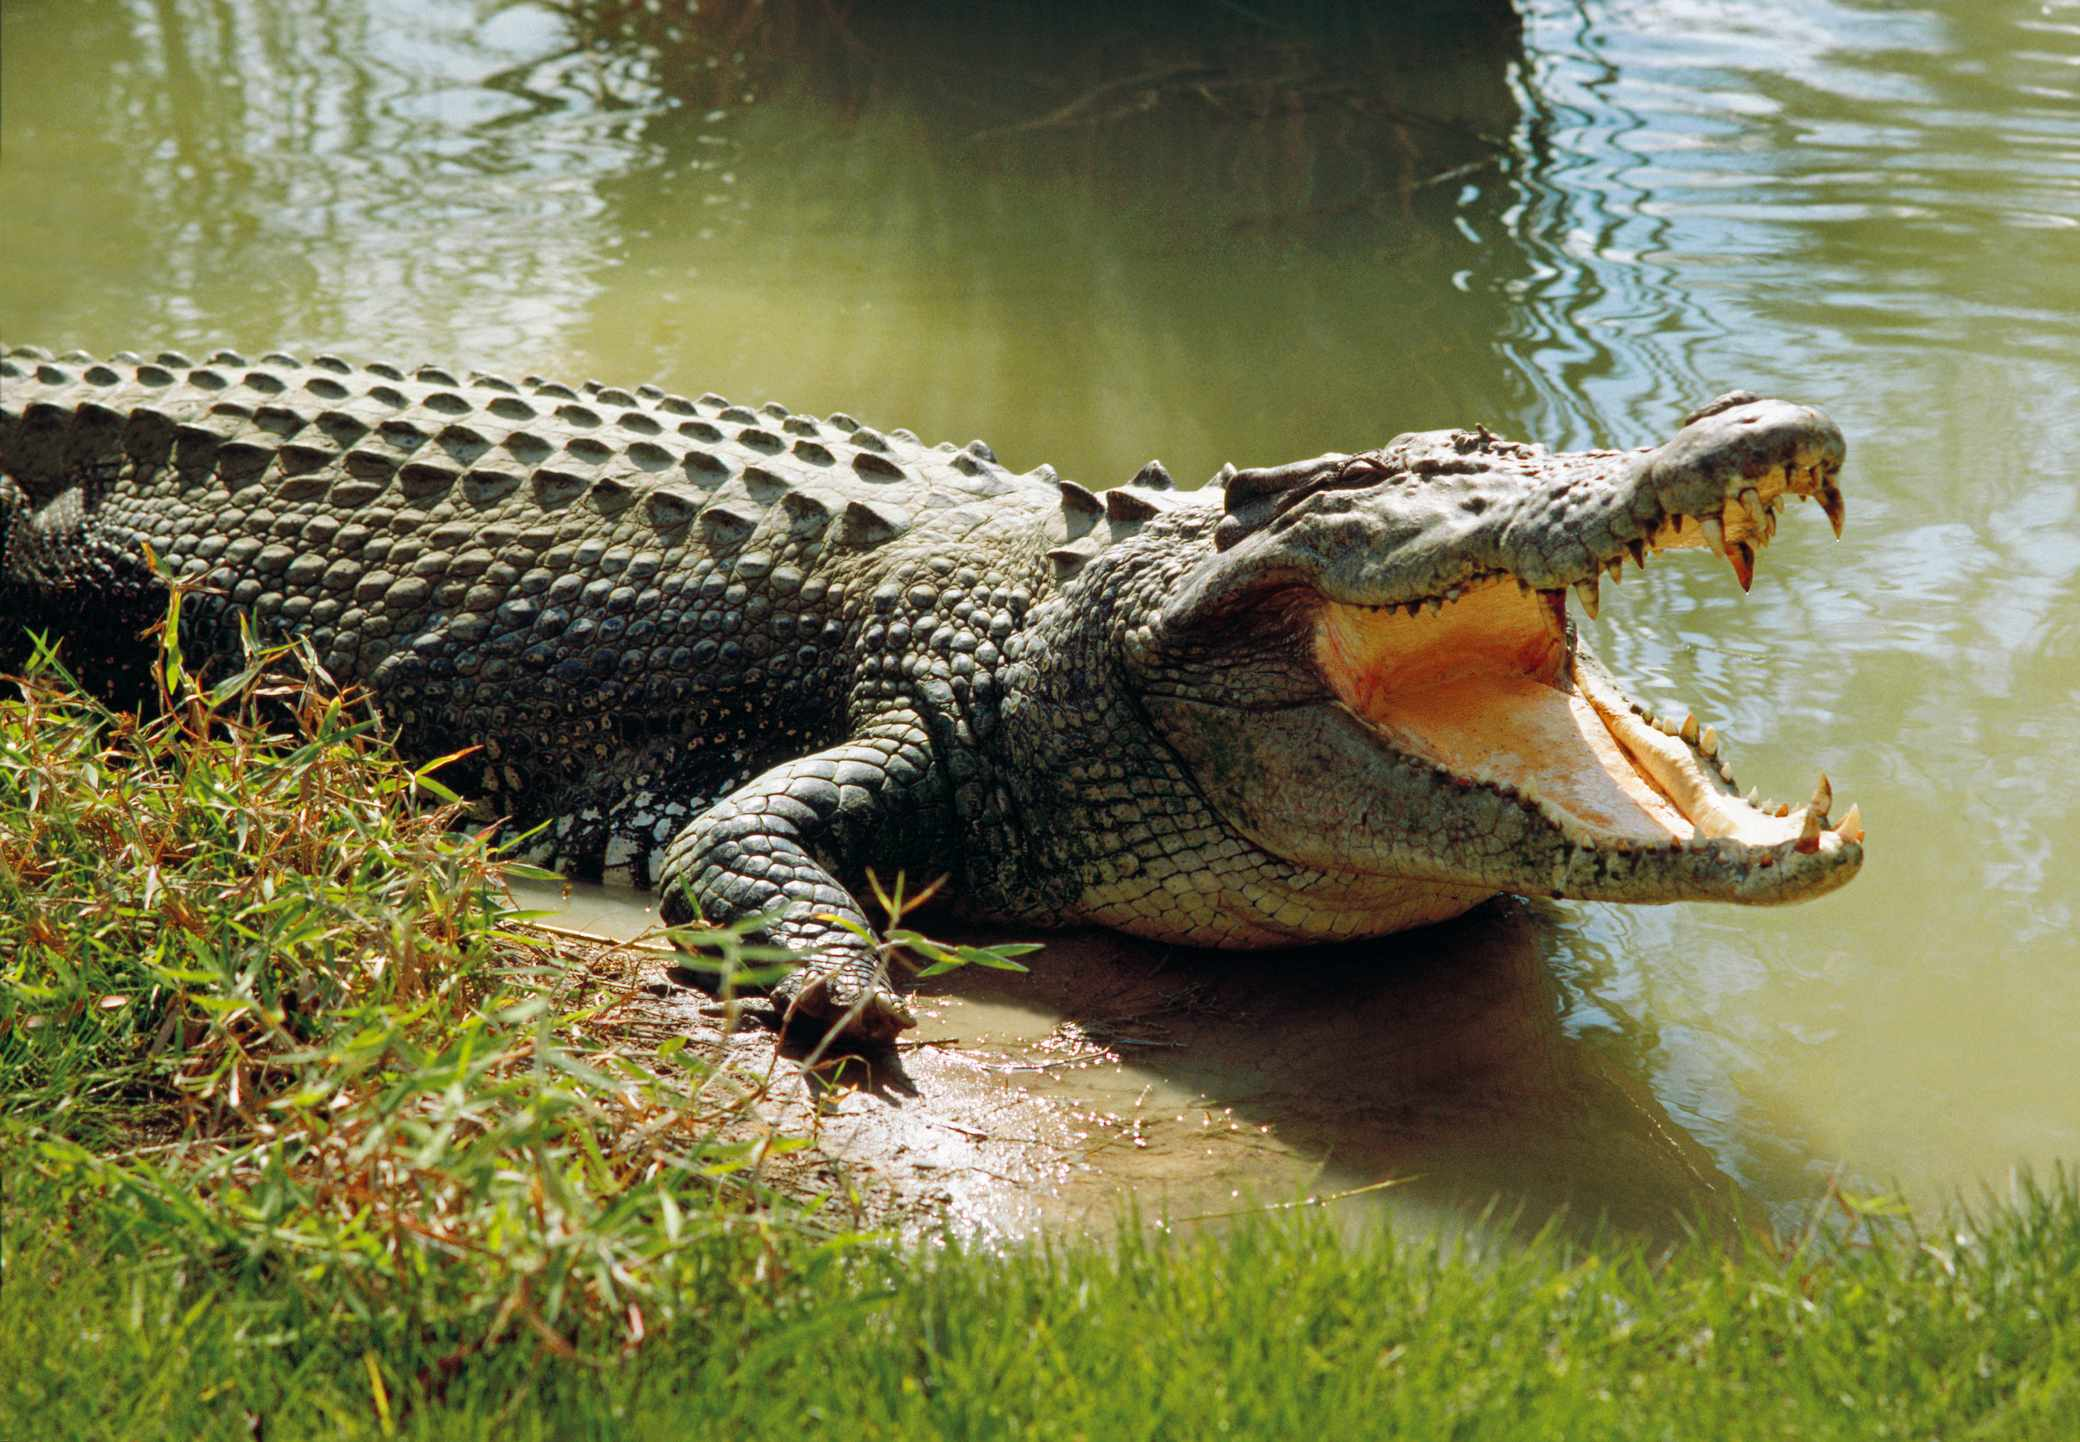 Saltwater crocodile (Crocodylus porosus) world's largest living reptile, cooling himself with open mouth, Darwin, Northern Territory, Australia. © Australian Scenics/Getty